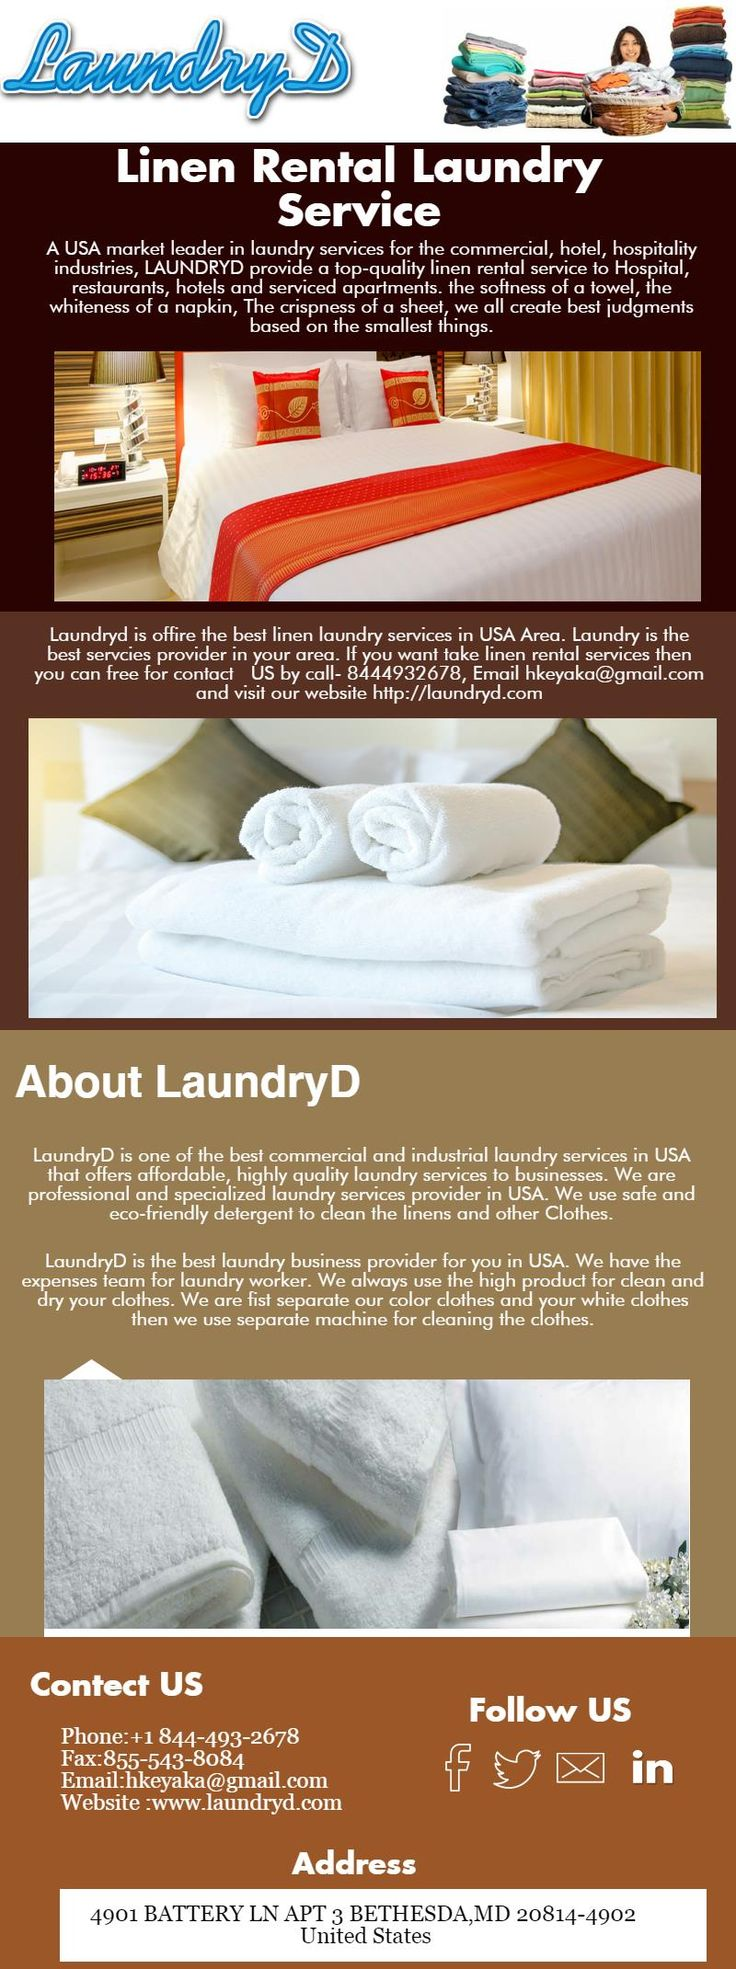 Hotel Linen laundry services offering by laundryD in USA. Laundryd offering the laundry services for Hotel, restaurant, hospital, commercial and industrial laundry services.